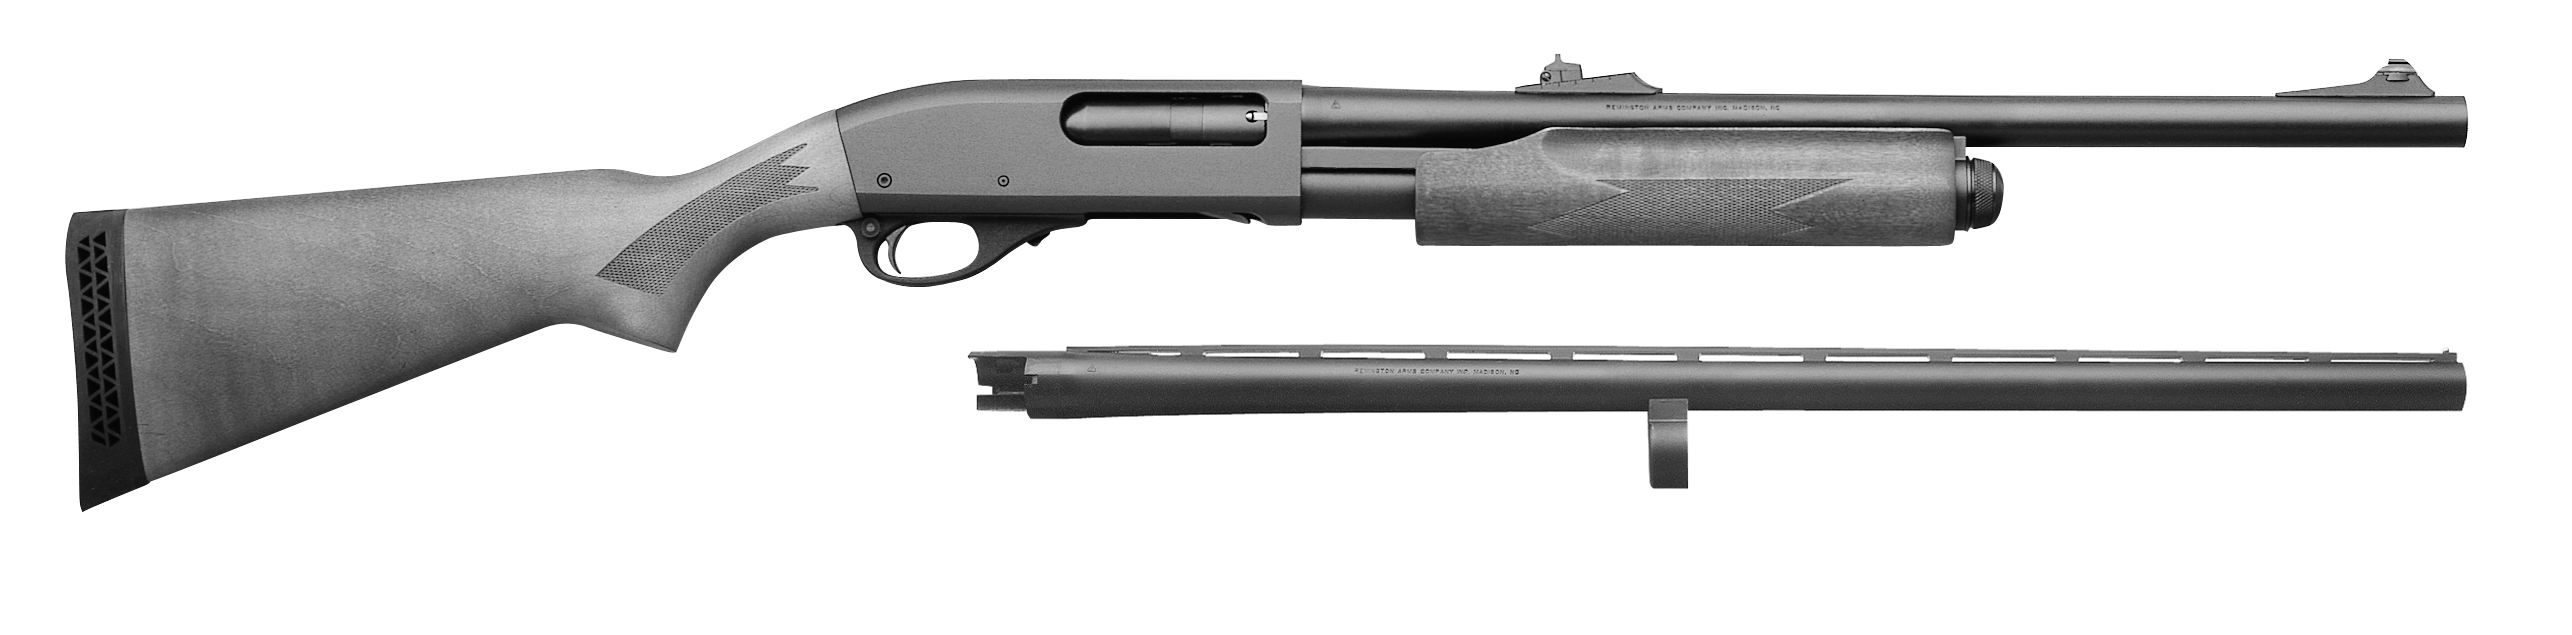 Remington model 870 - internet movie firearms database - guns in movies, tv and video games